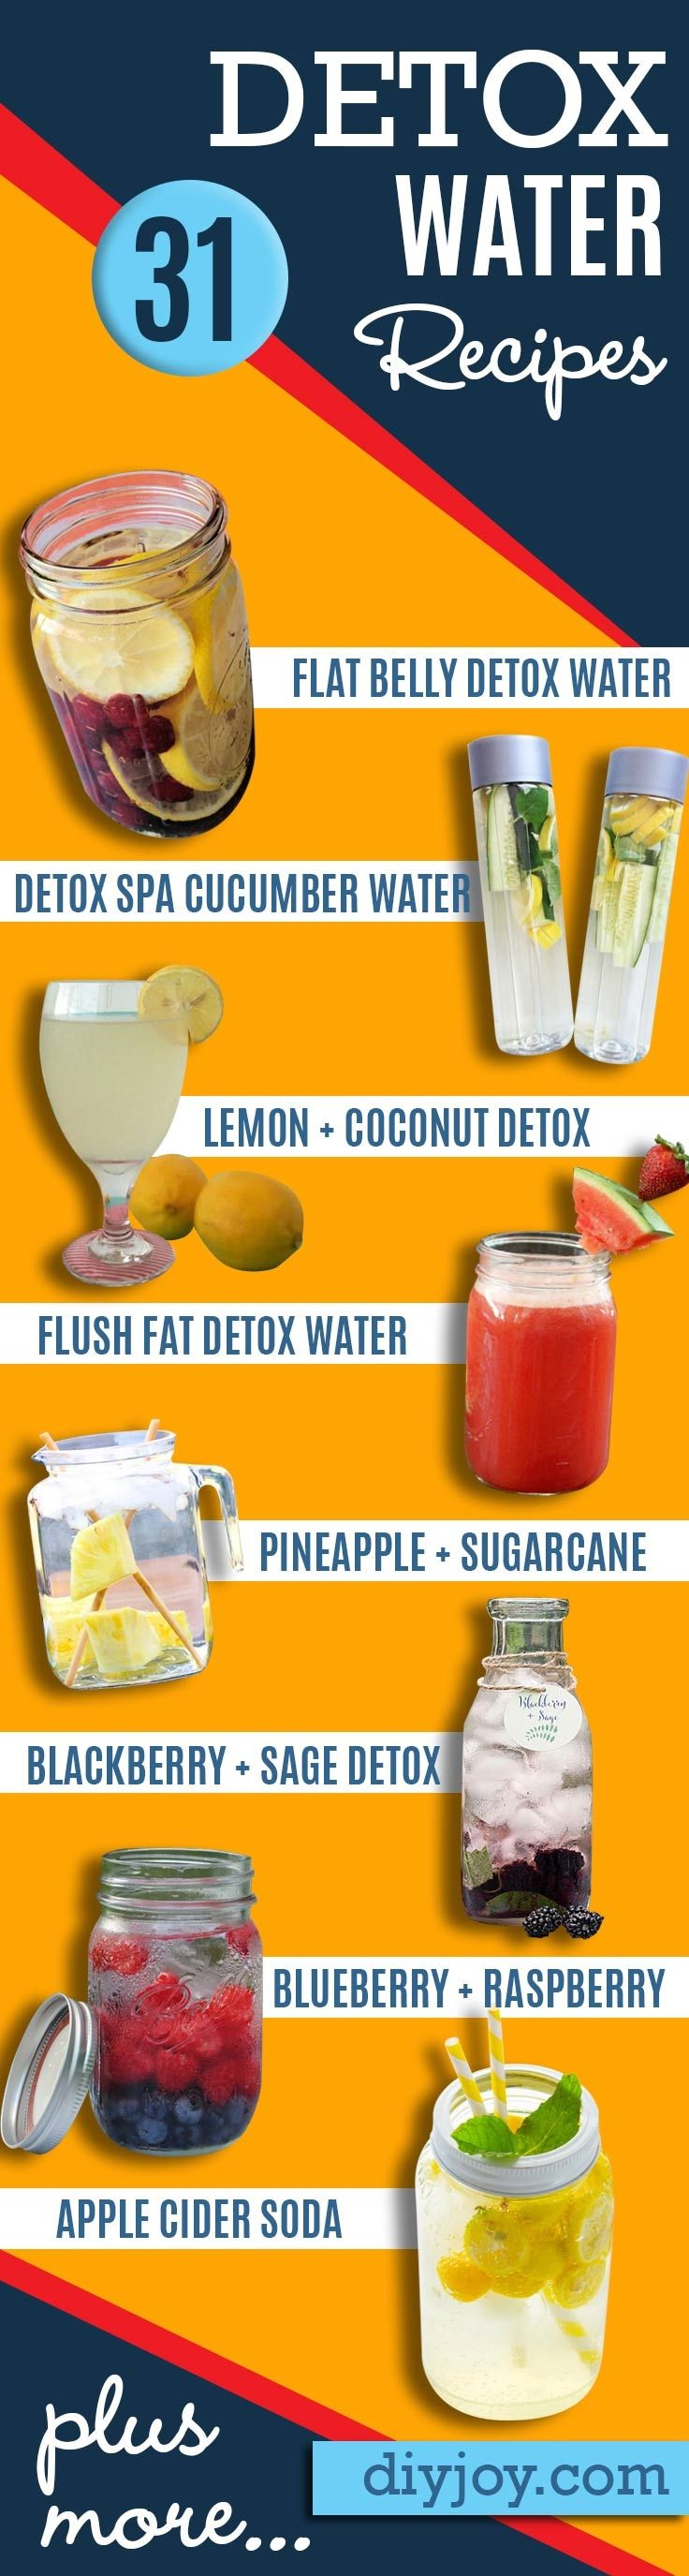 Can water or diet drinks aid weight loss?